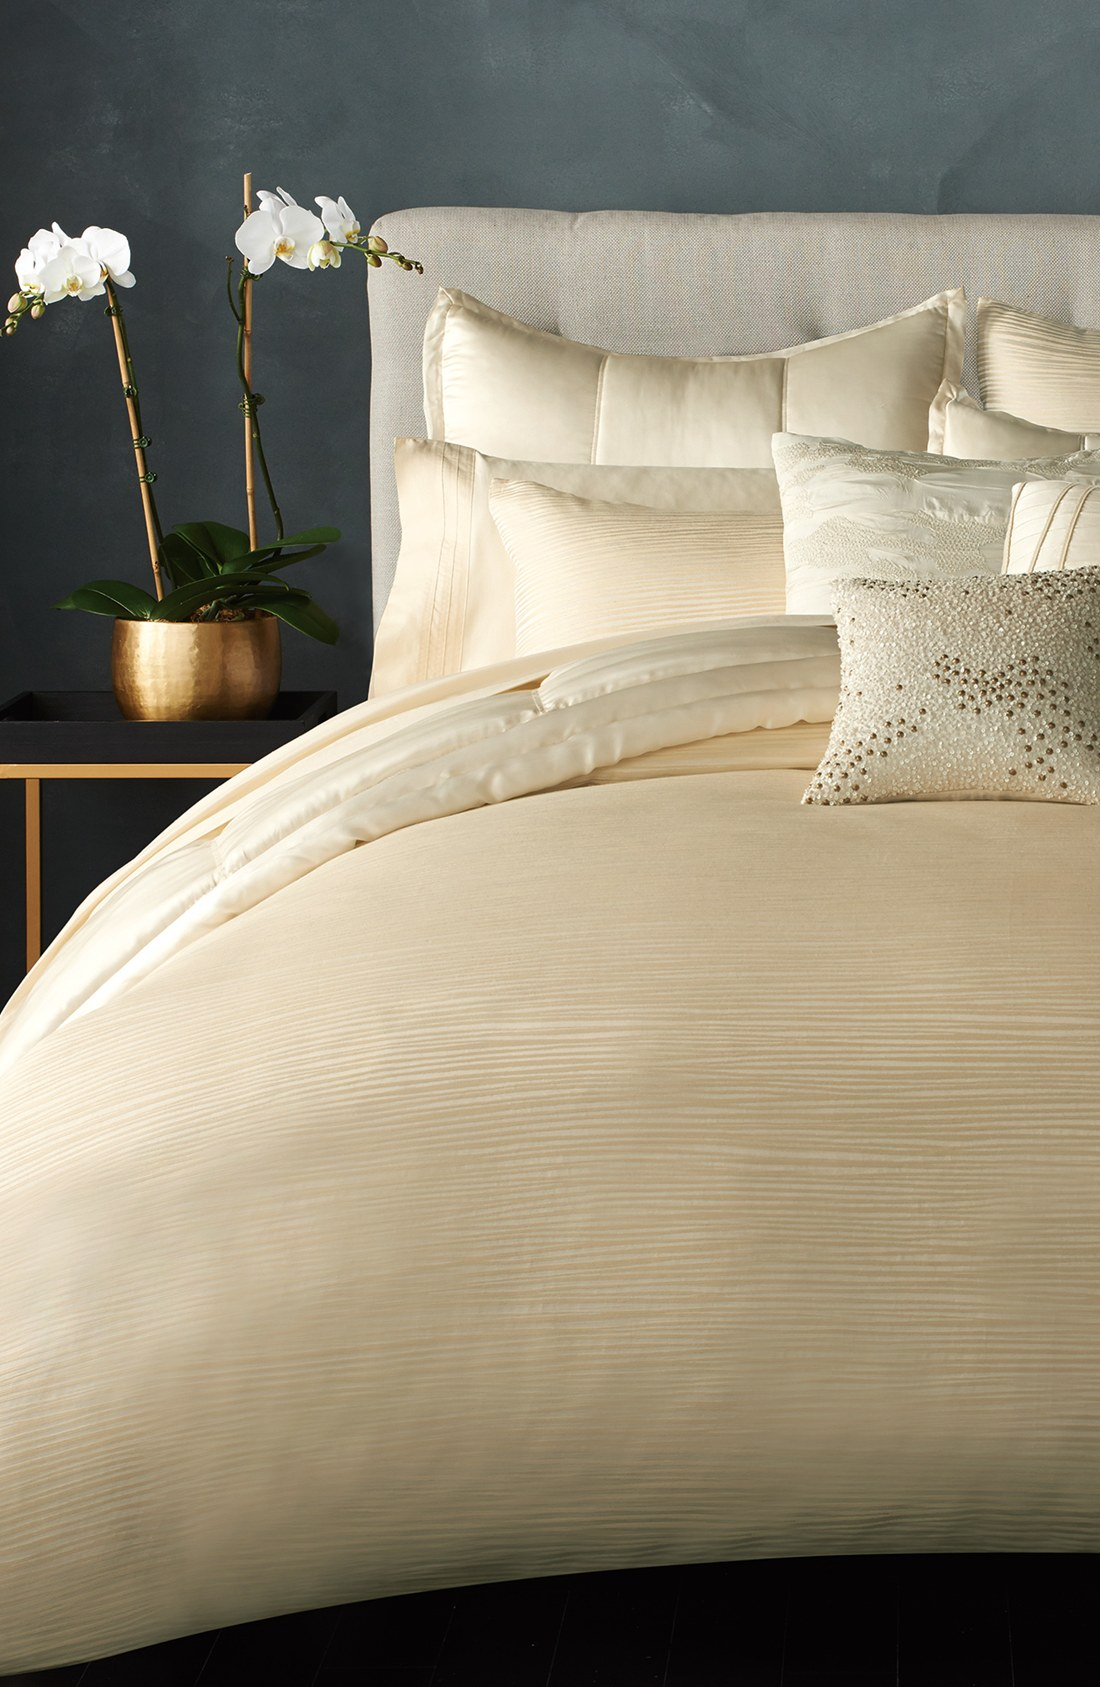 Breathtaking donna karan bedding with Cushion and pillows also beautiful duvet cover and sidetable and luxury wall paint color